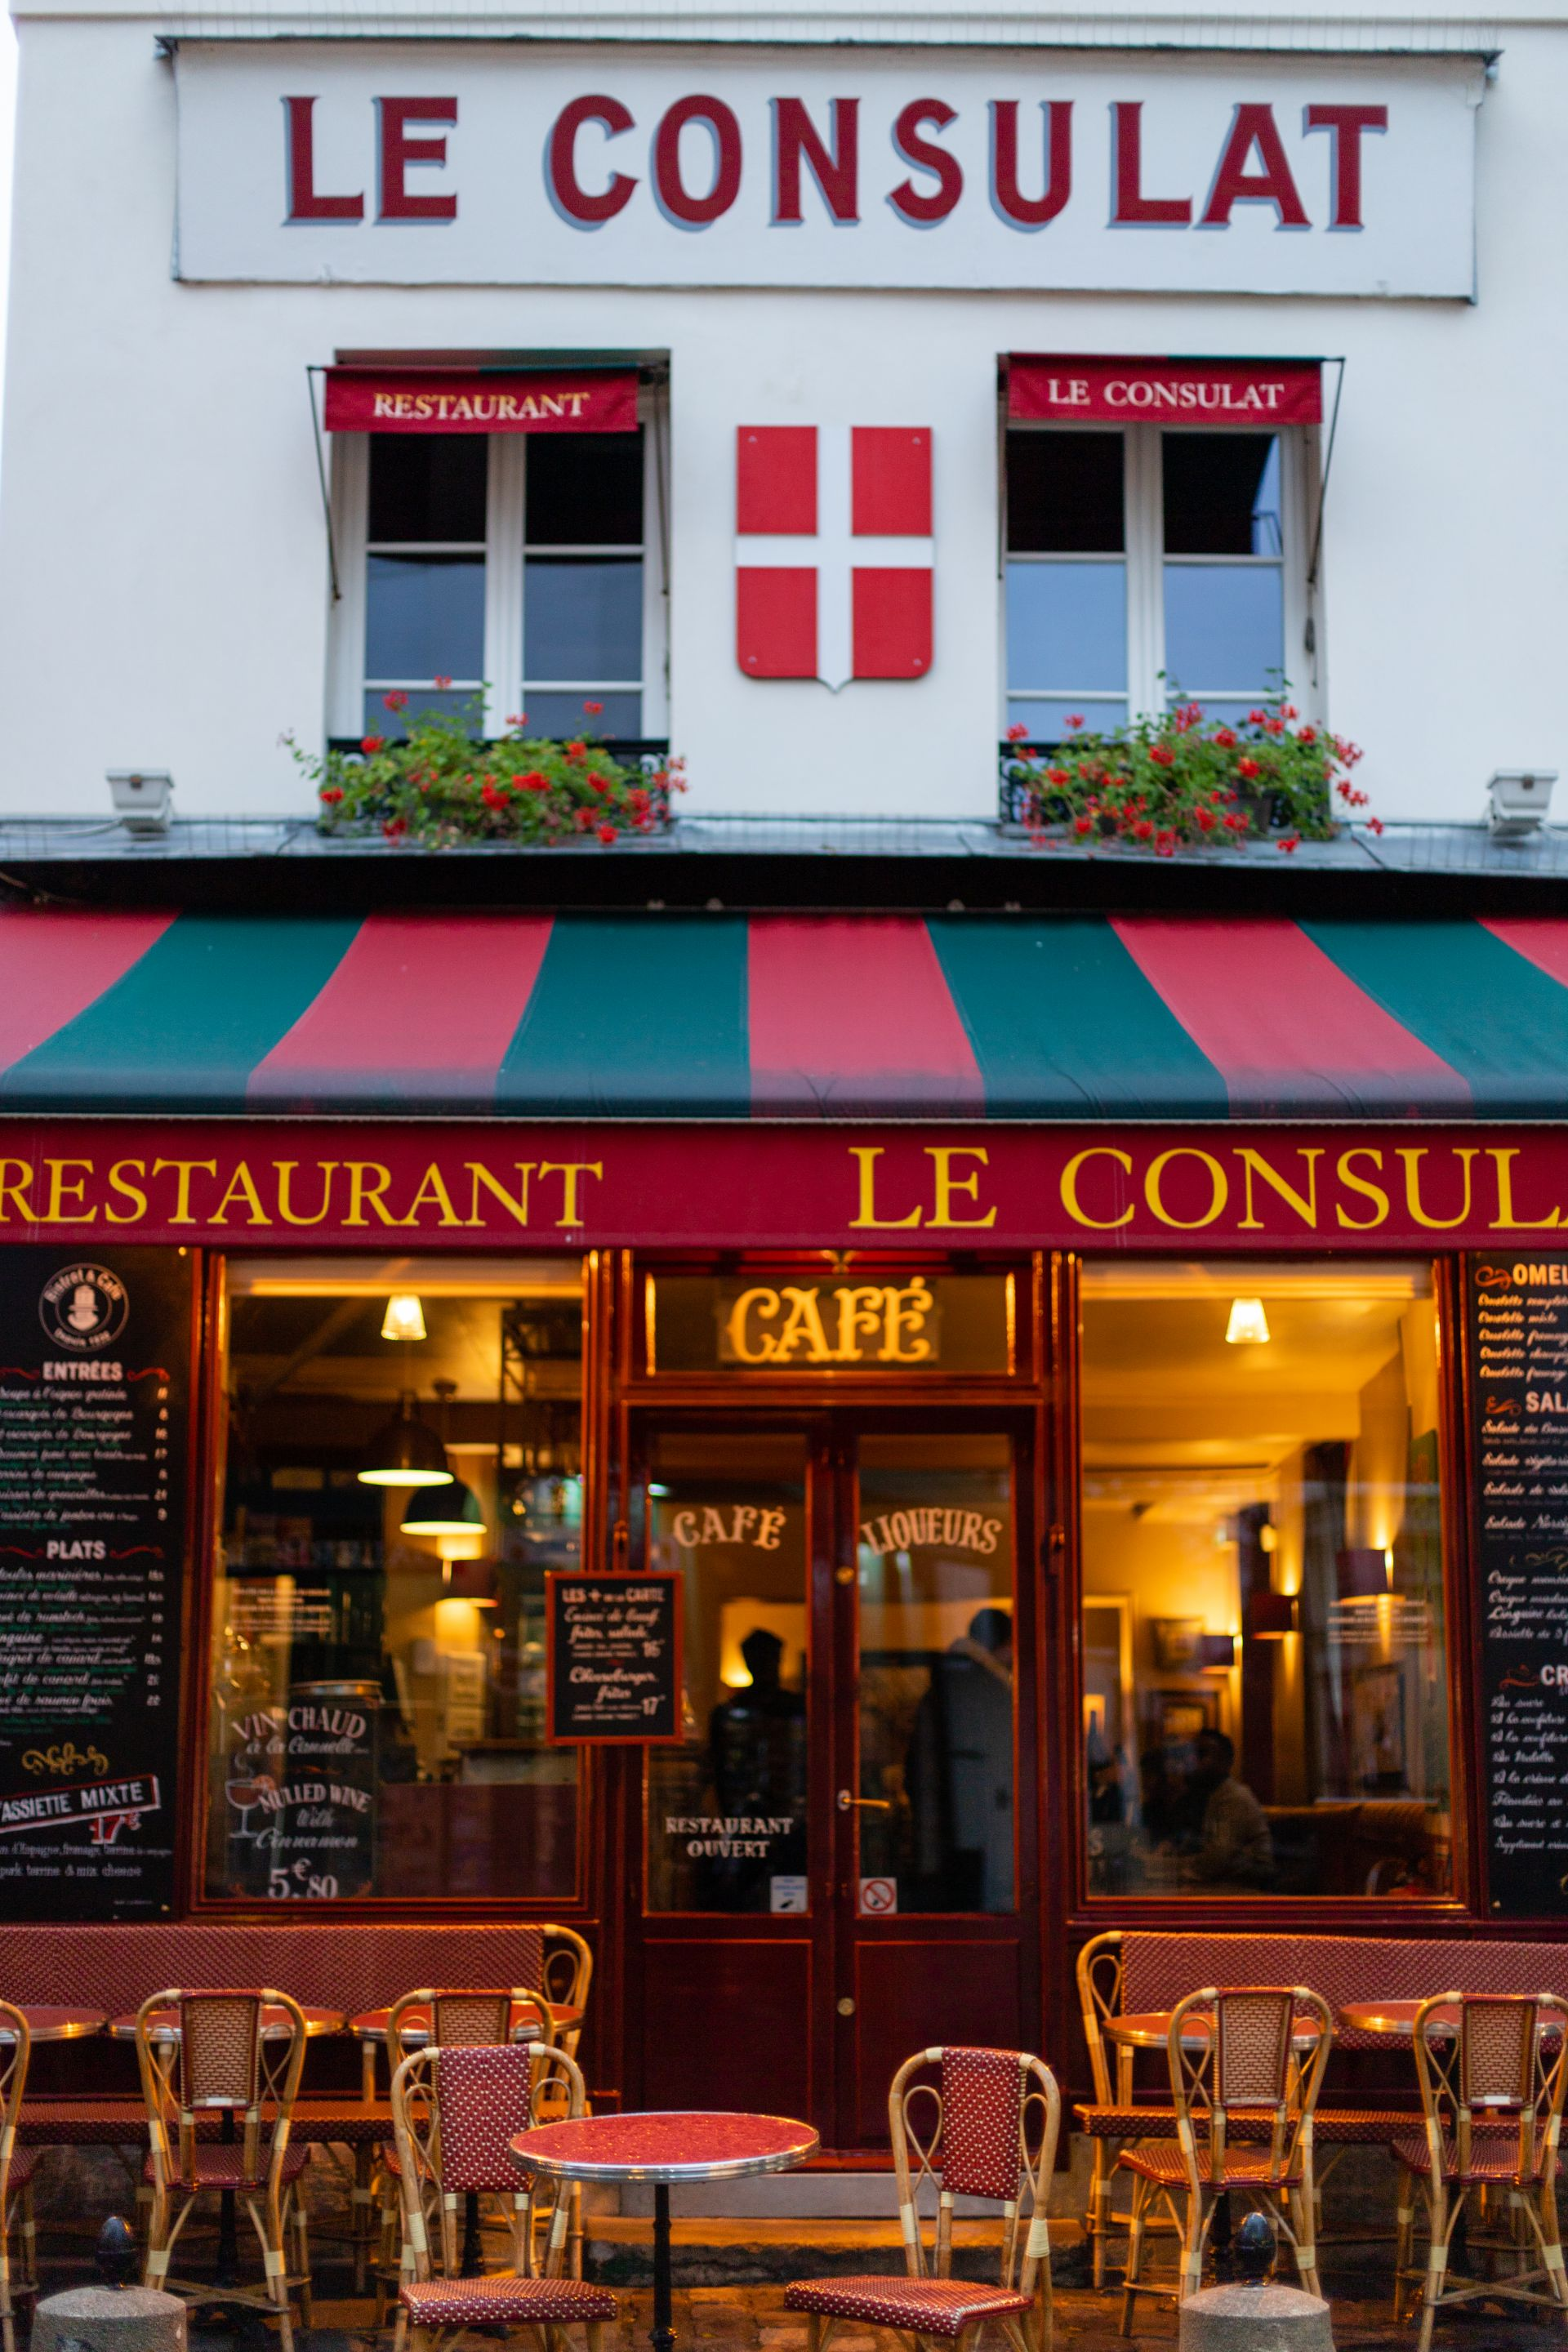 Le Consulat Restaurant in Montmarte Paris France